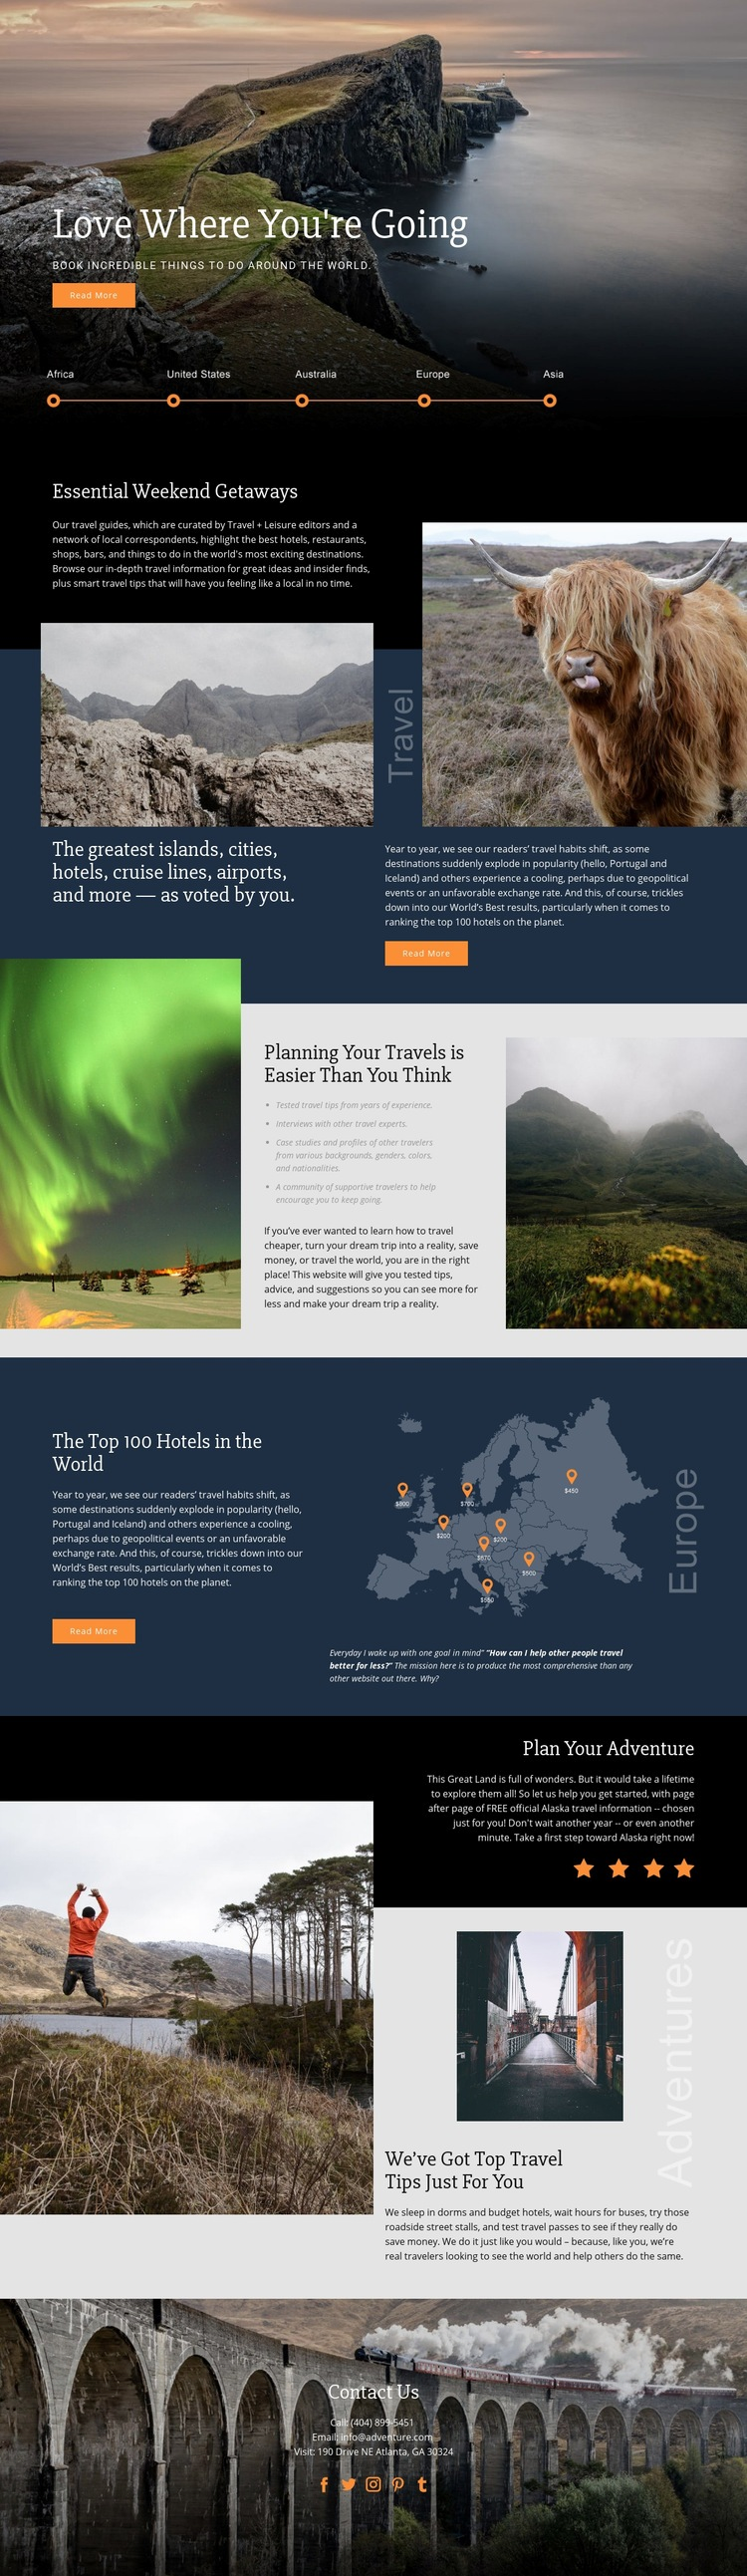 Planning Your Travel Html Code Example